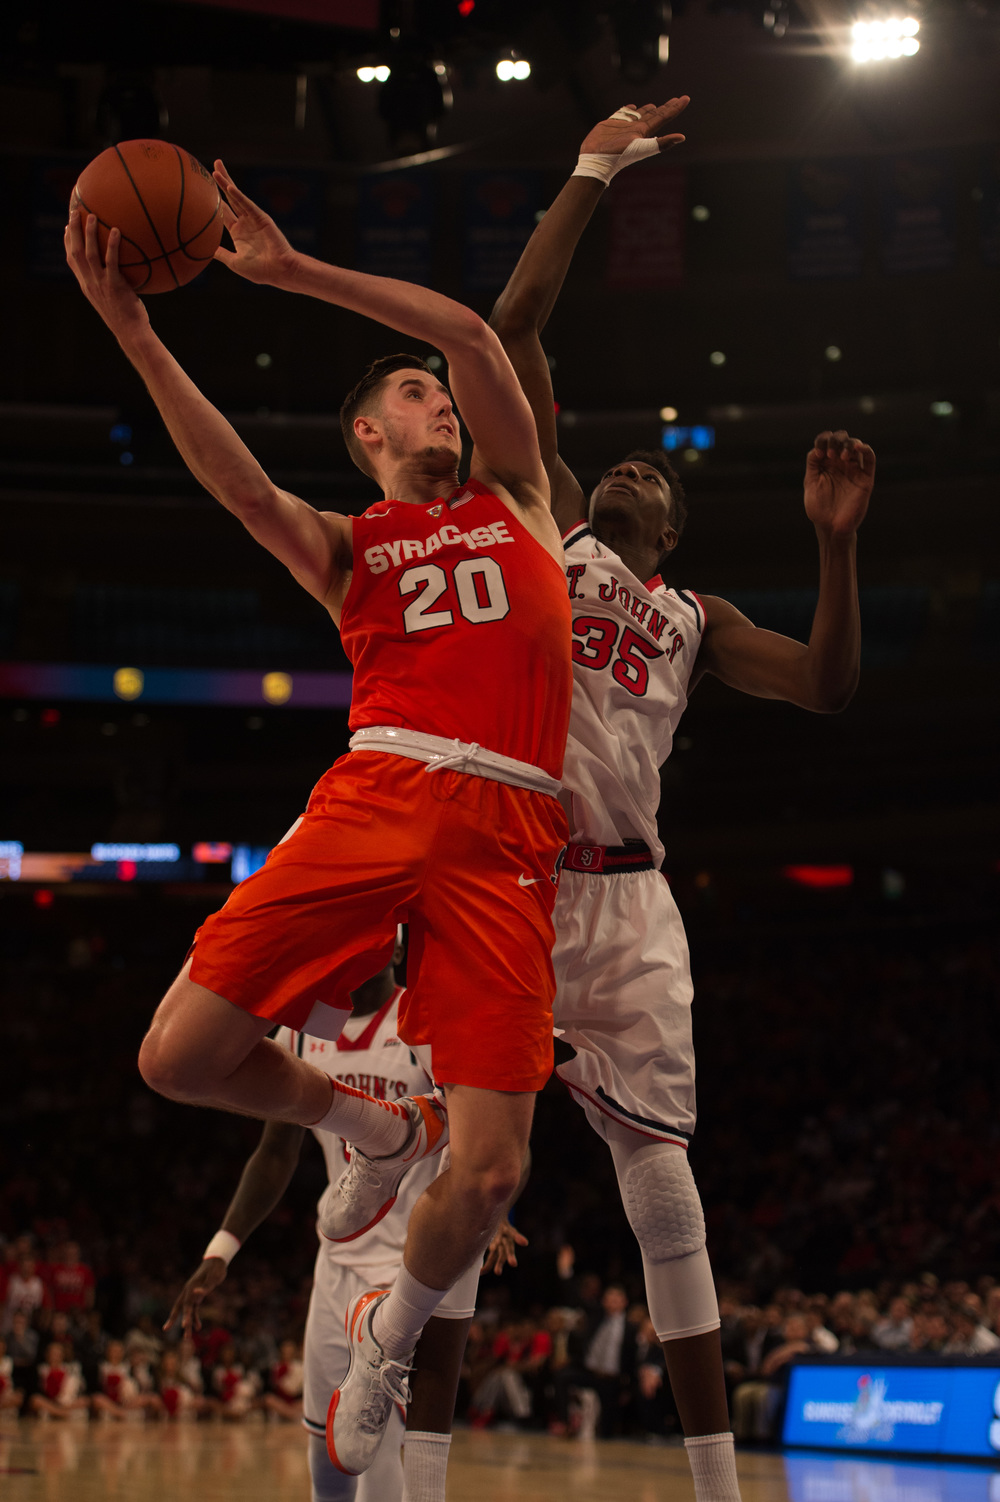 Syracuse vs St. Johns-15.jpg